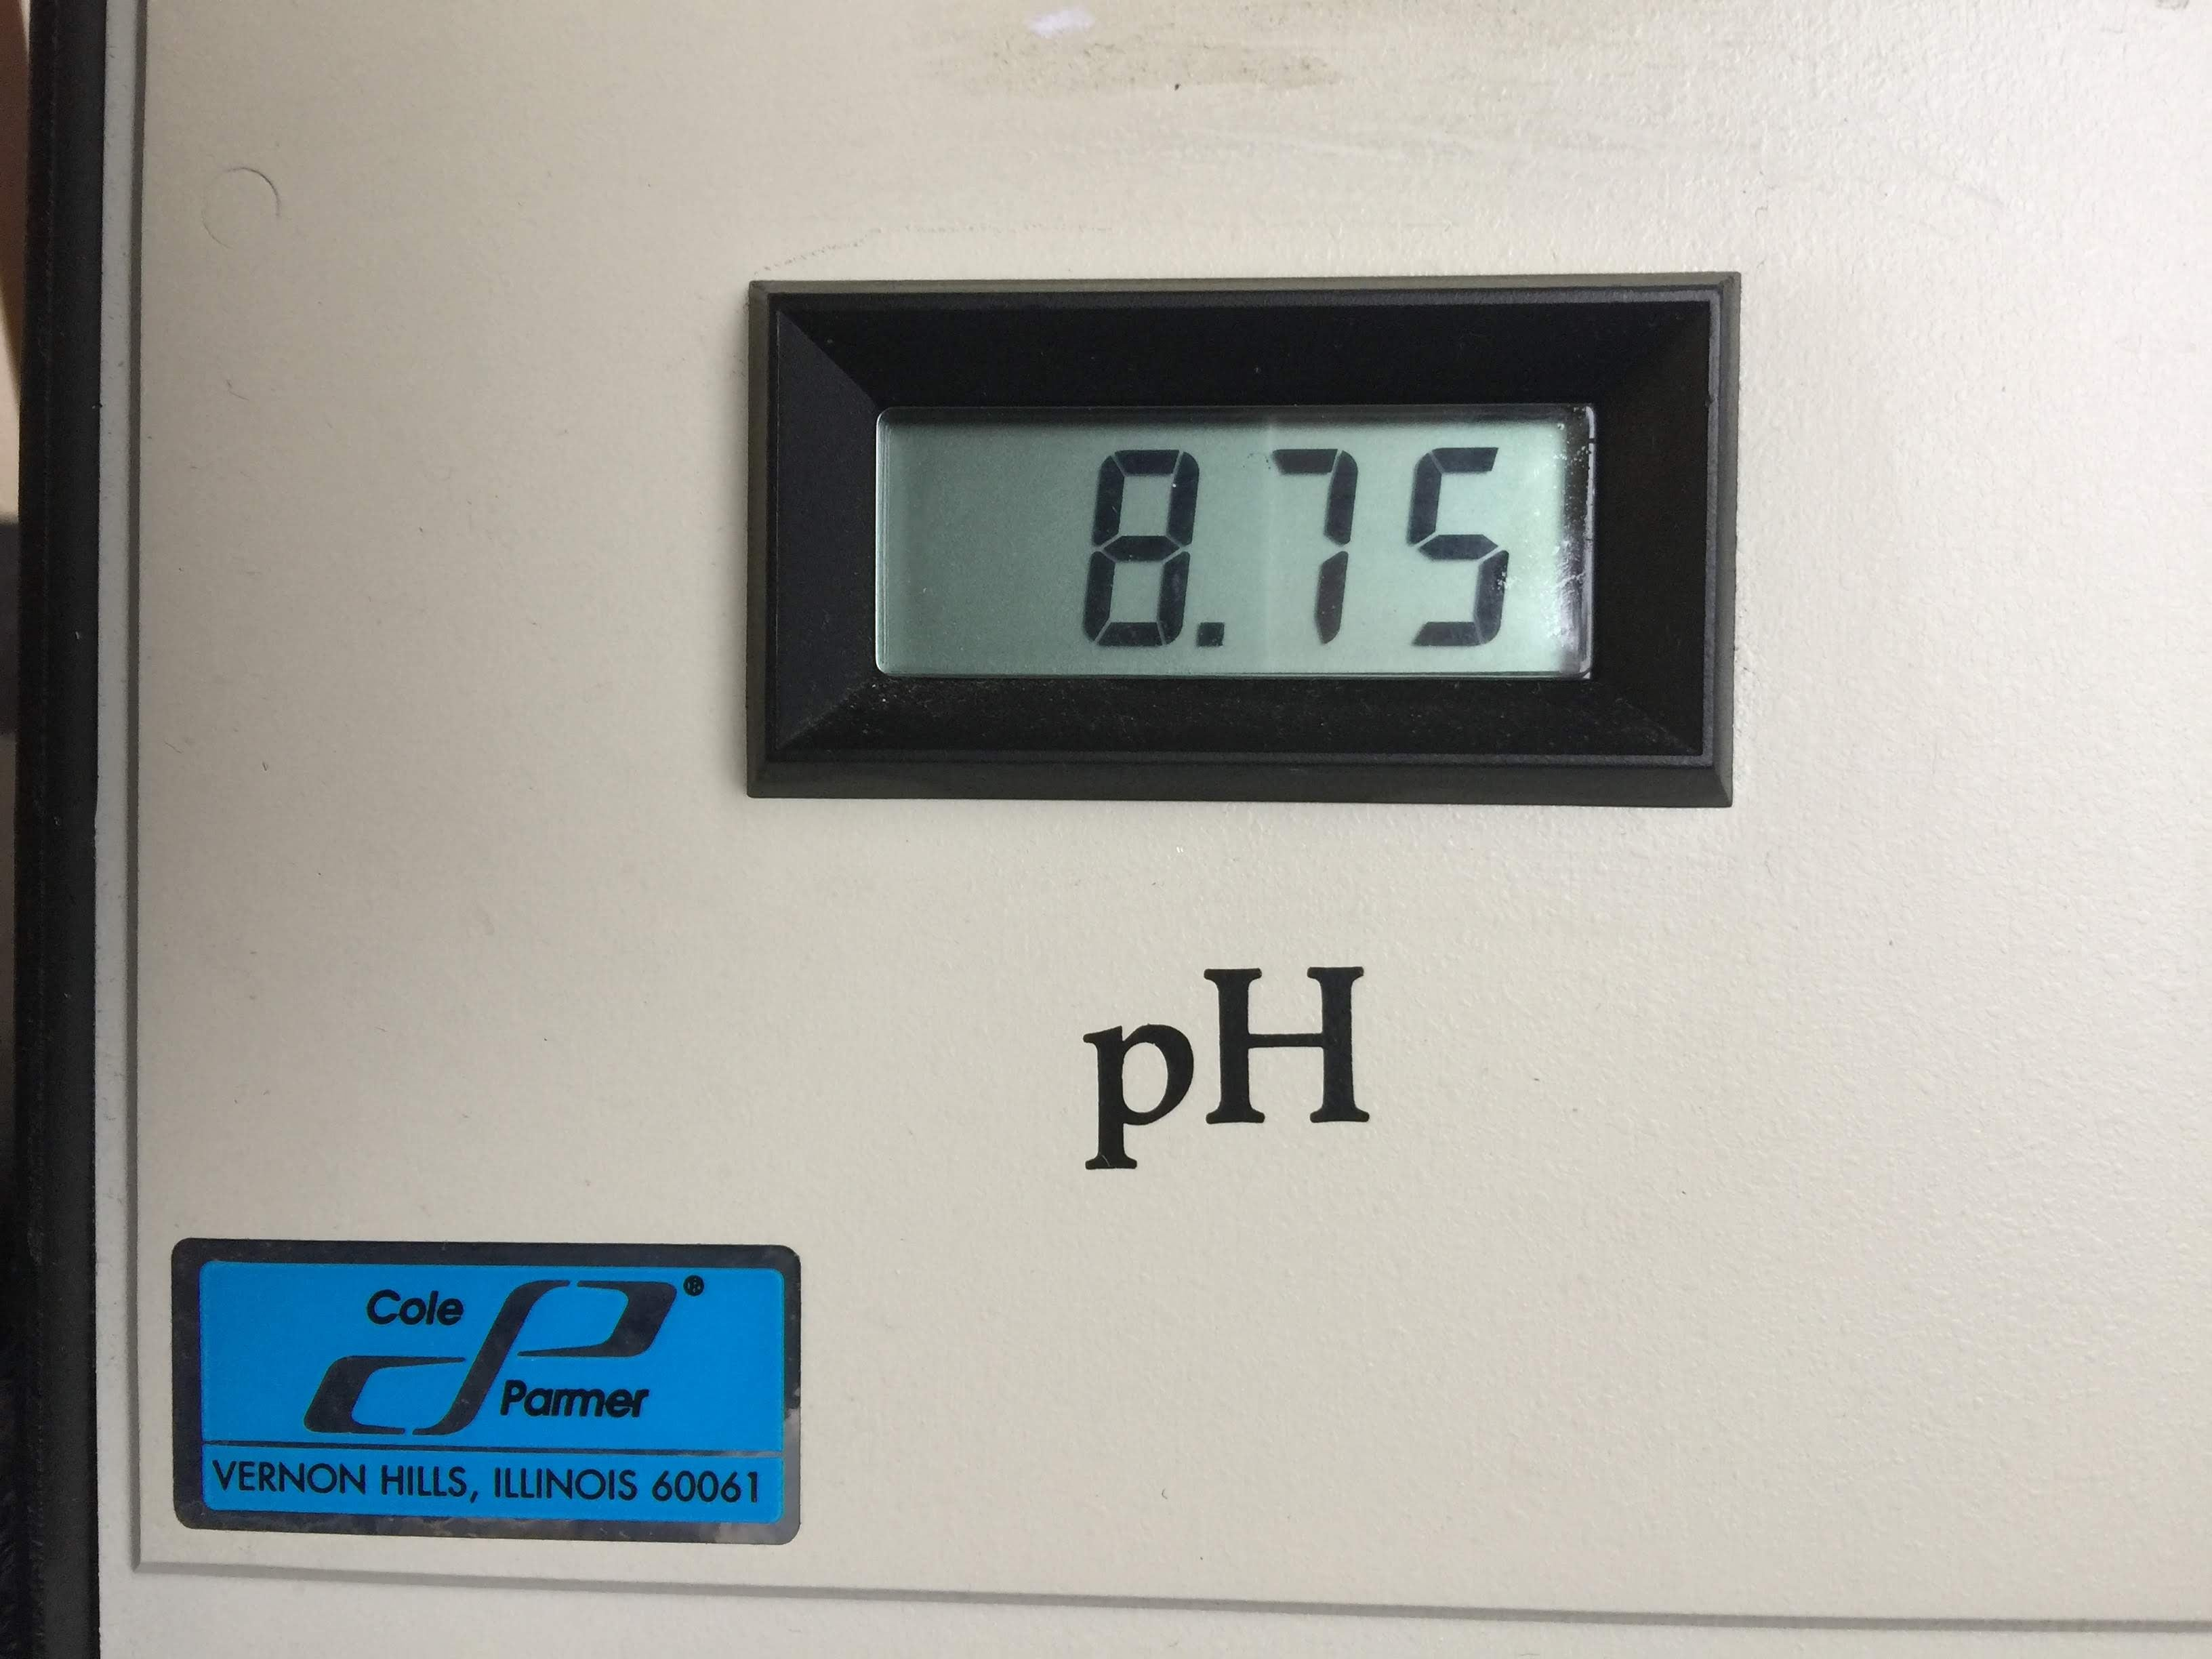 pH of 8.75 Shown on the Digital Screen